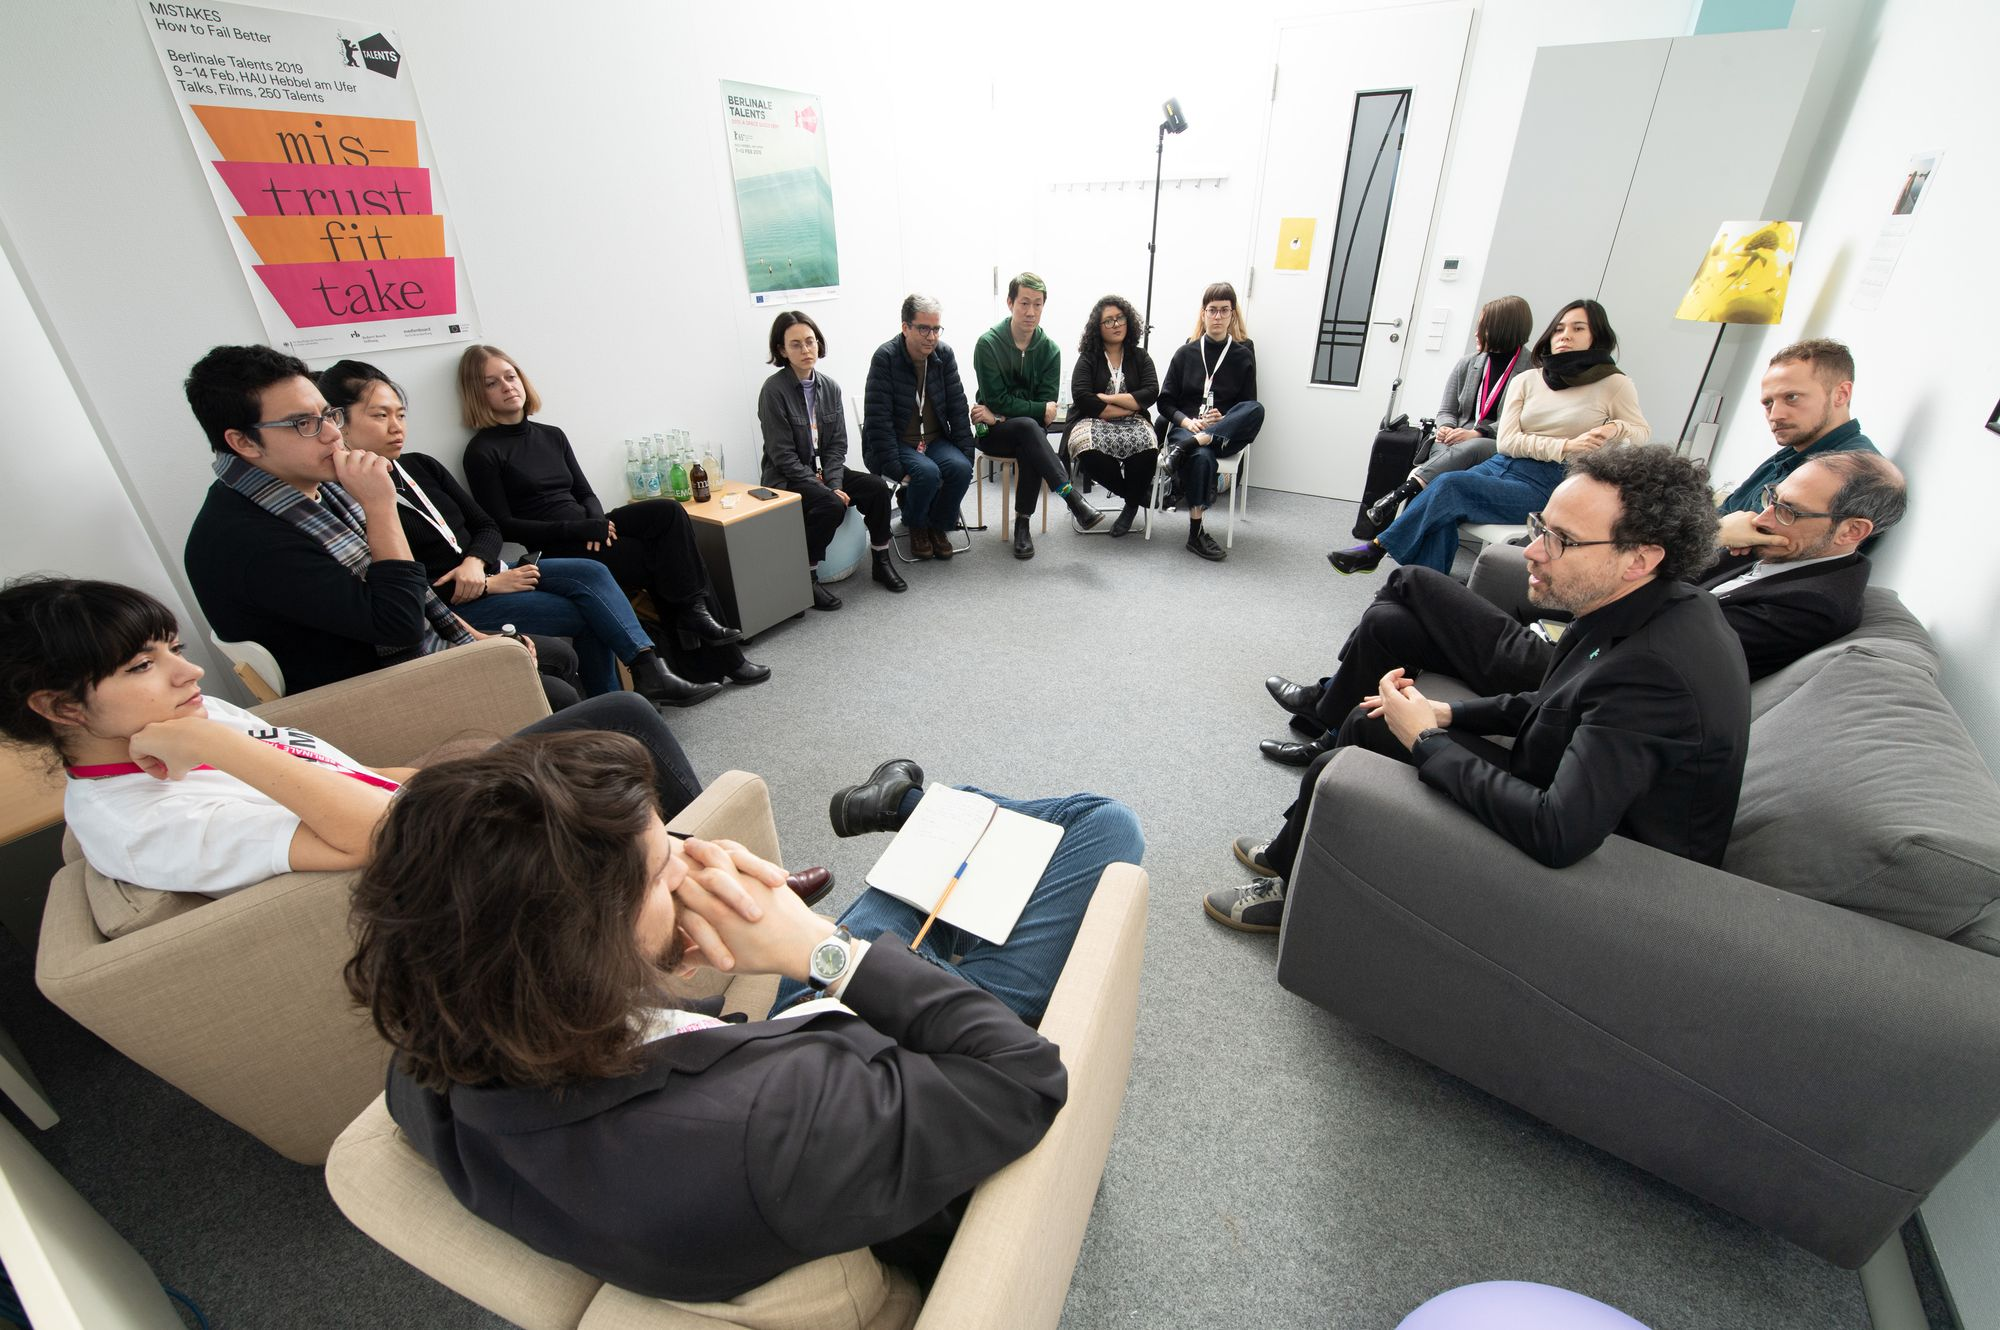 The Talent Press team listen attentively to Berlinale Artistic Director Carlo Chatrian.